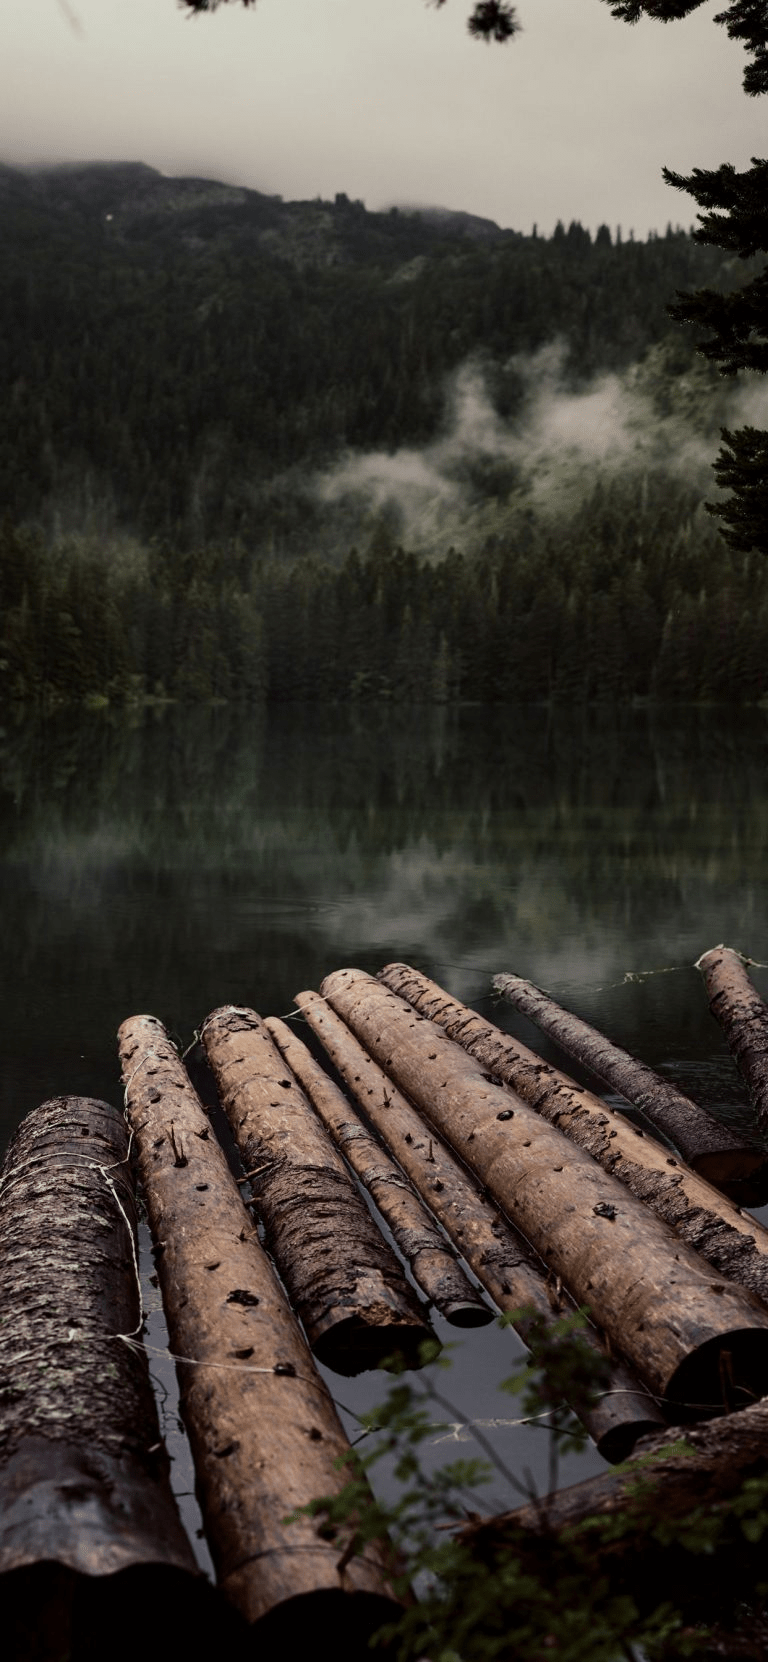 Logs Submerged In Water, calming background